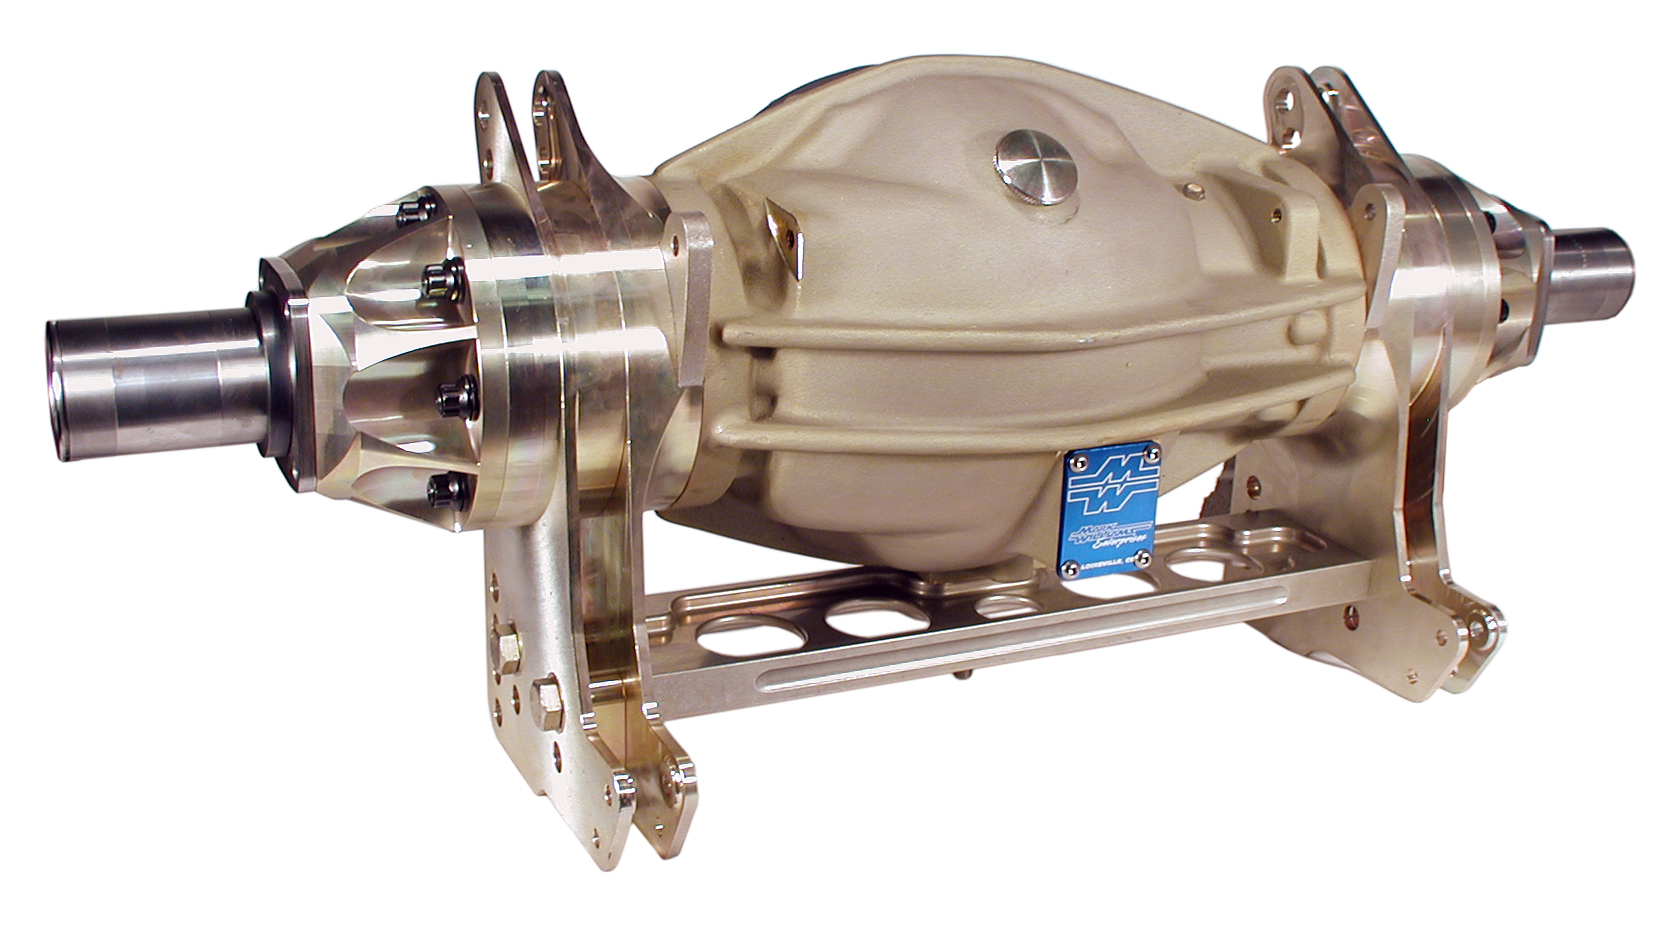 "This Modular 9"" Pro 4-Link housing is the ultimate 9"" for the suspended rear racecar. The layout of the 4-link attachment points coincide with those used by today's Pro Stock chassis builders. Units are available in both floater and flange type configurations (this one is obviously a floater). As pointed out in the text, a billet aluminum cross tie bar is used to secure the 4-link brackets to the bottom of the housing. The housing also has provisions for either upper or lower wishbone attachment and you can see here, it comes with shock and wheelie bar mounts. The standard housing has a 37-inch wheel-to-wheel width and 20-inch 4-link centers. Other dimensions are available."